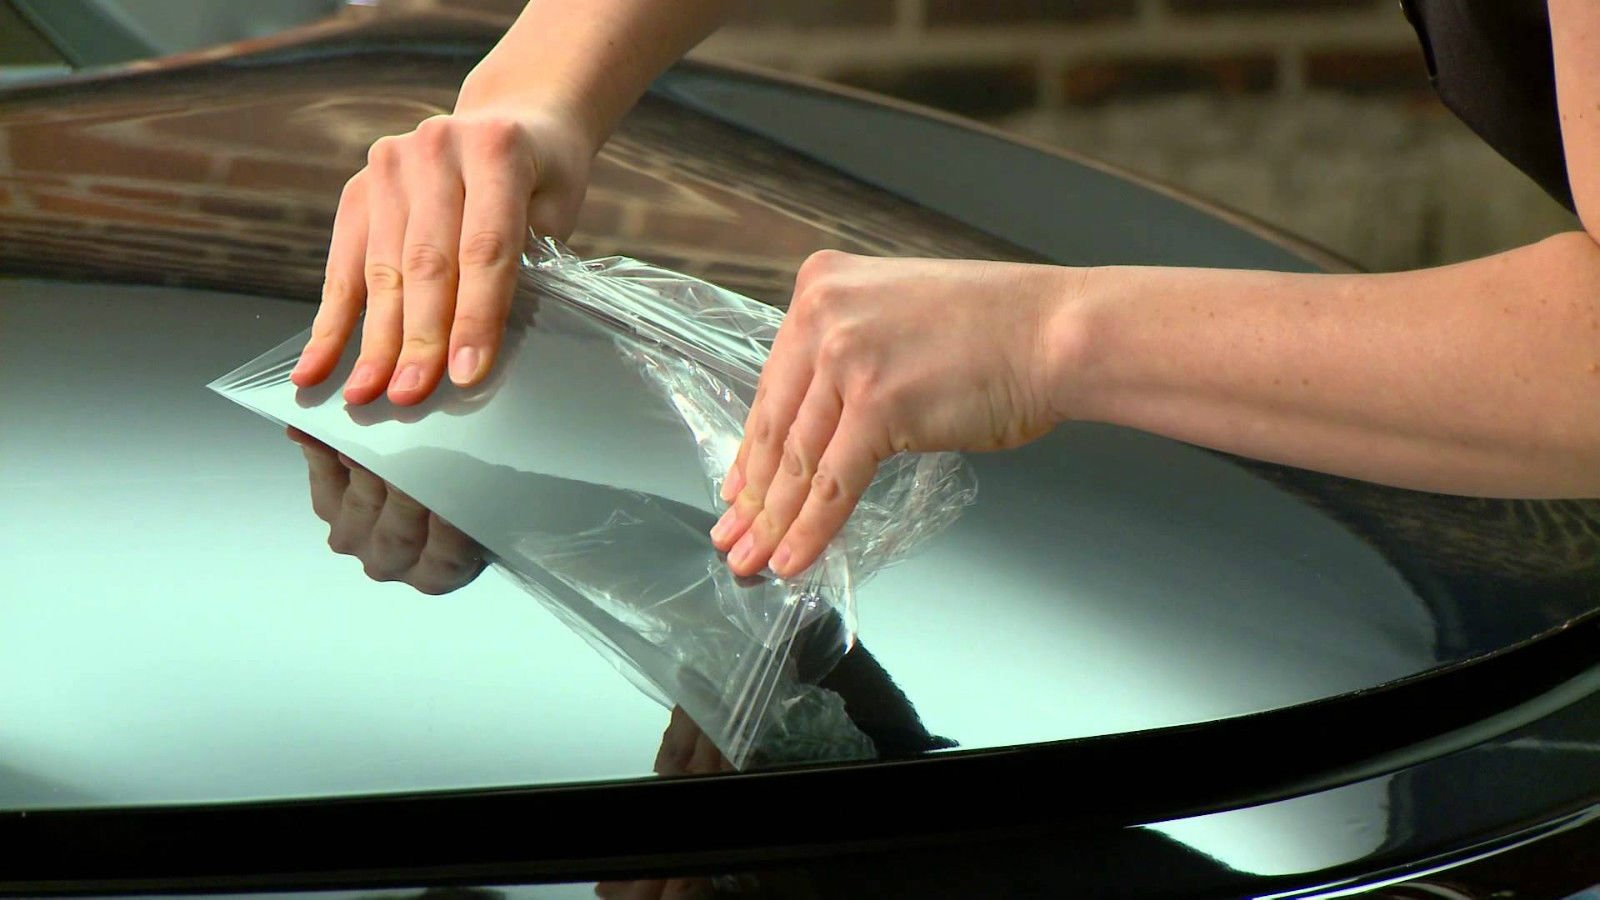 VViViD paint protection film 5ft x 54'' clear gloss self healing wrap guard